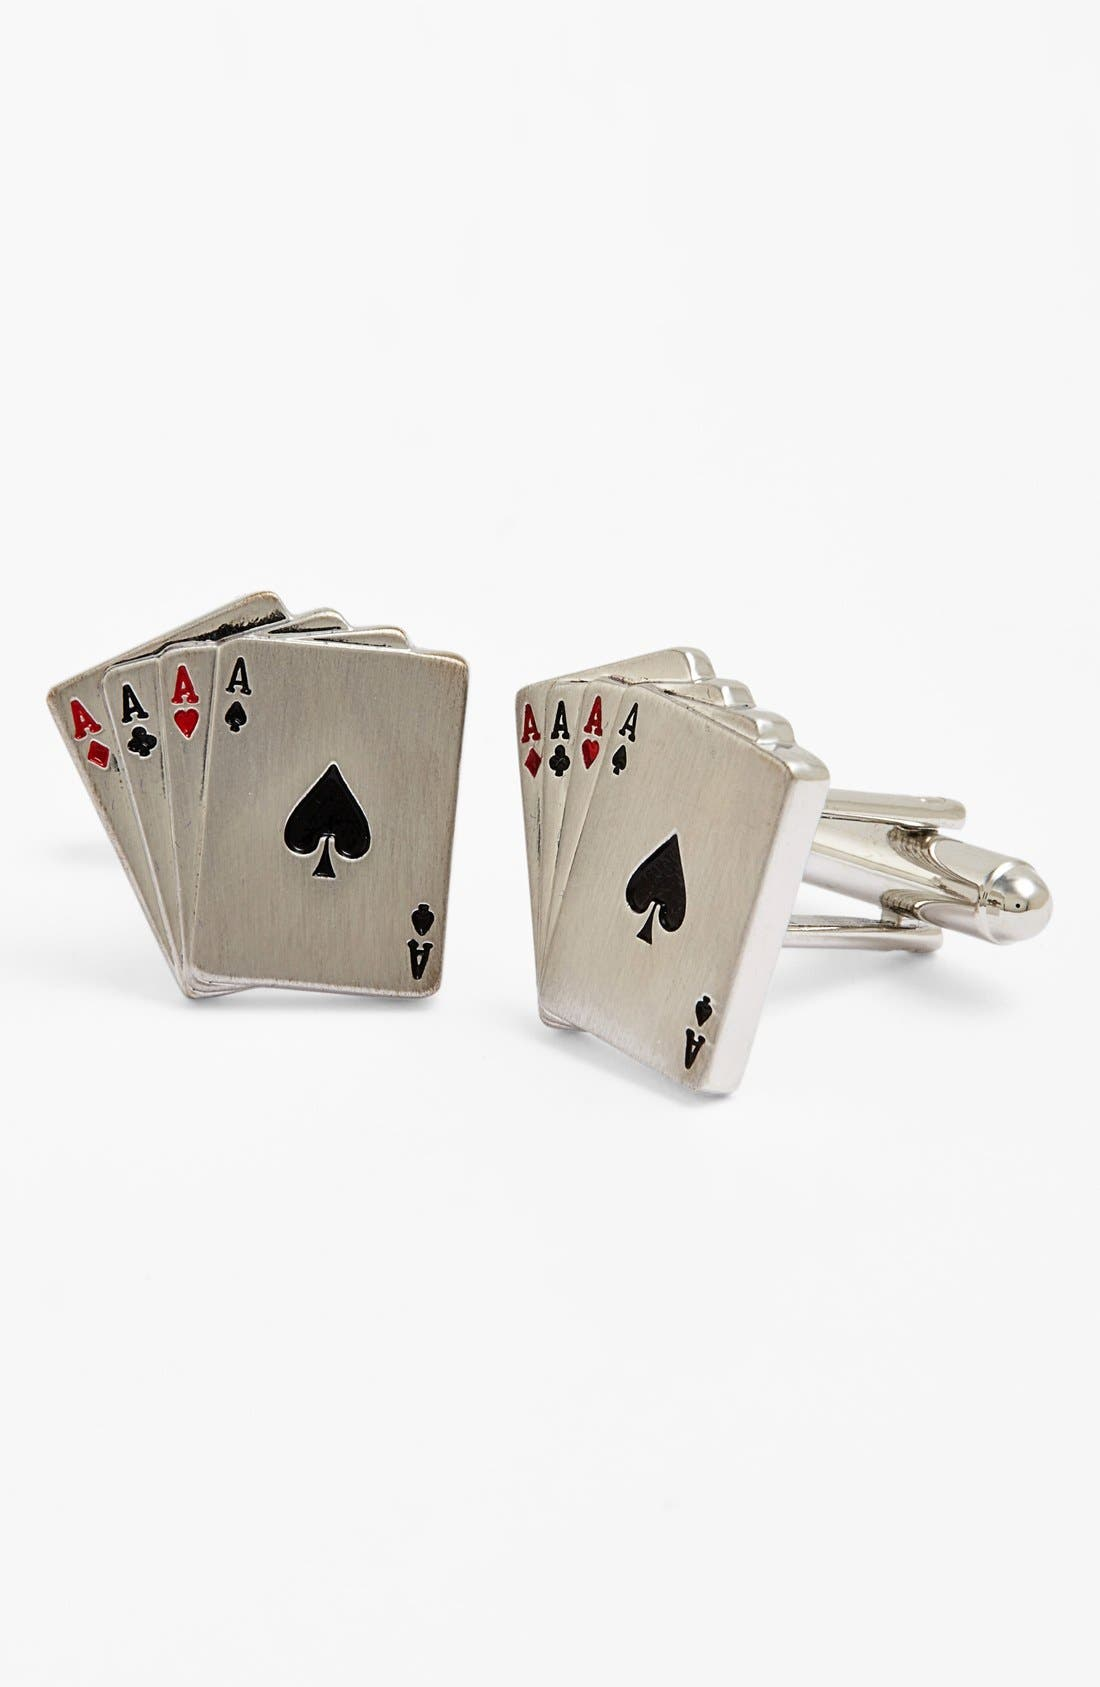 LINK UP Aces Wild Cuff Links